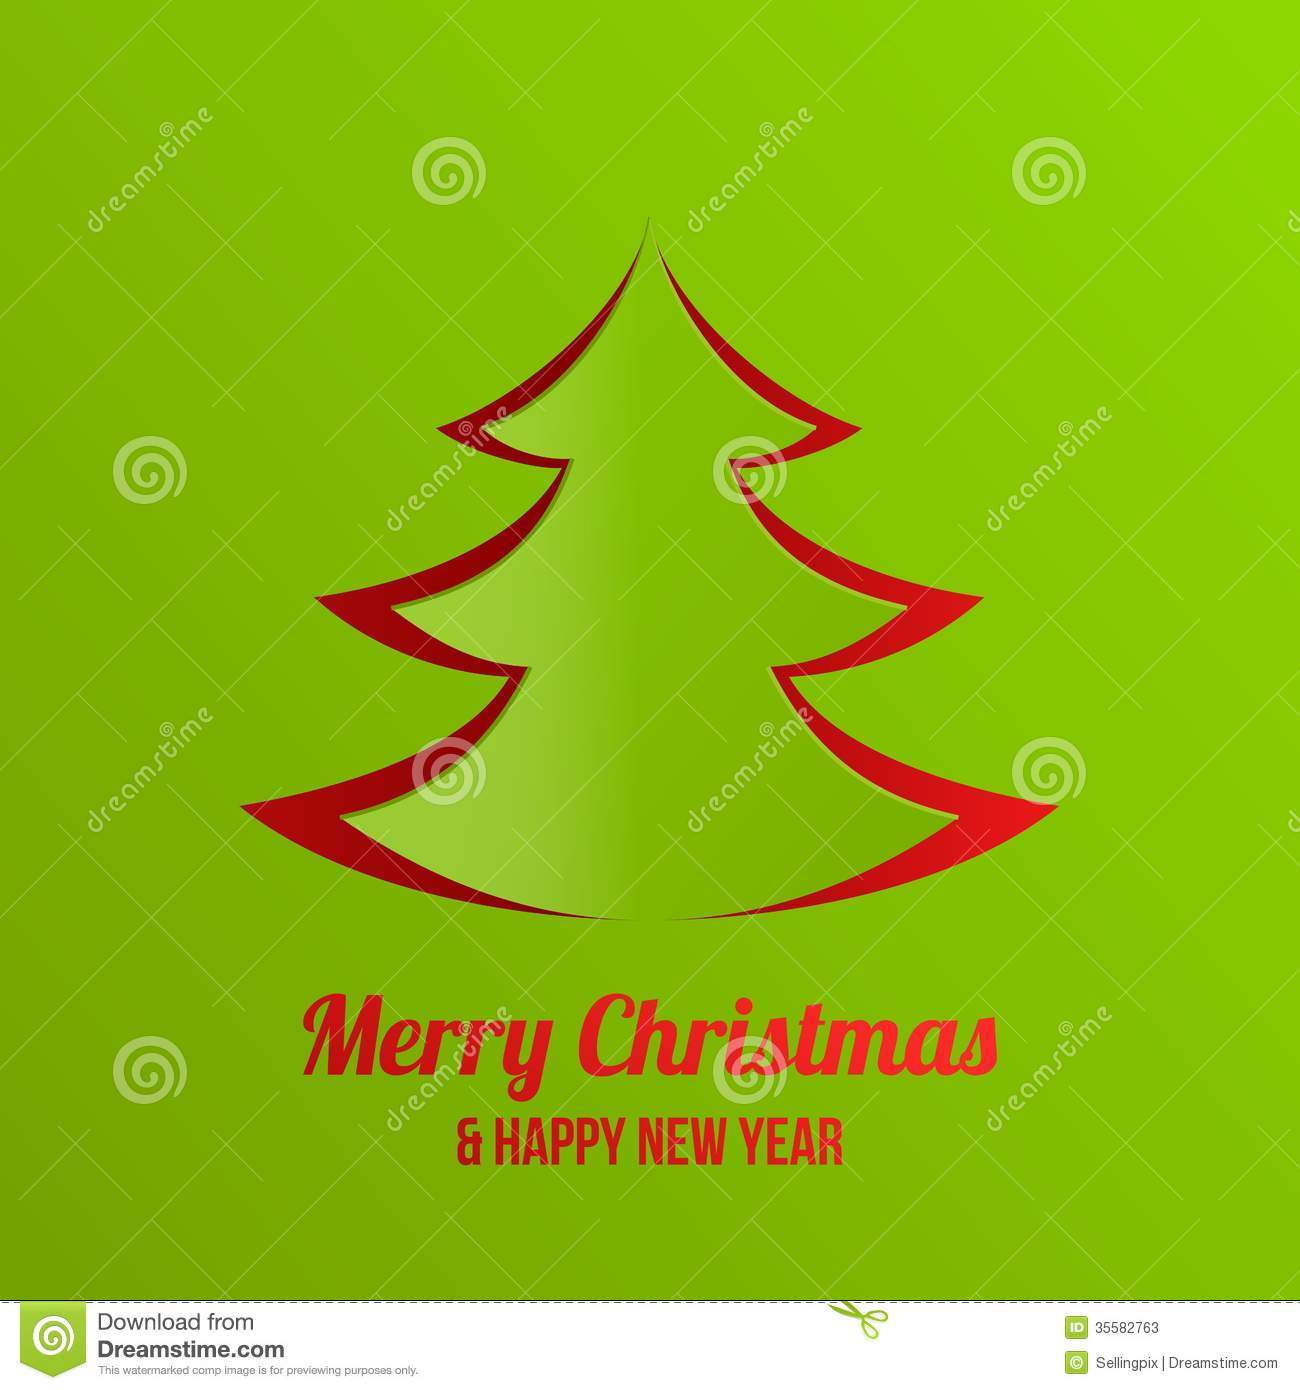 Merry christmas new year greeting card vector desi stock vector merry christmas new year greeting card vector desi m4hsunfo